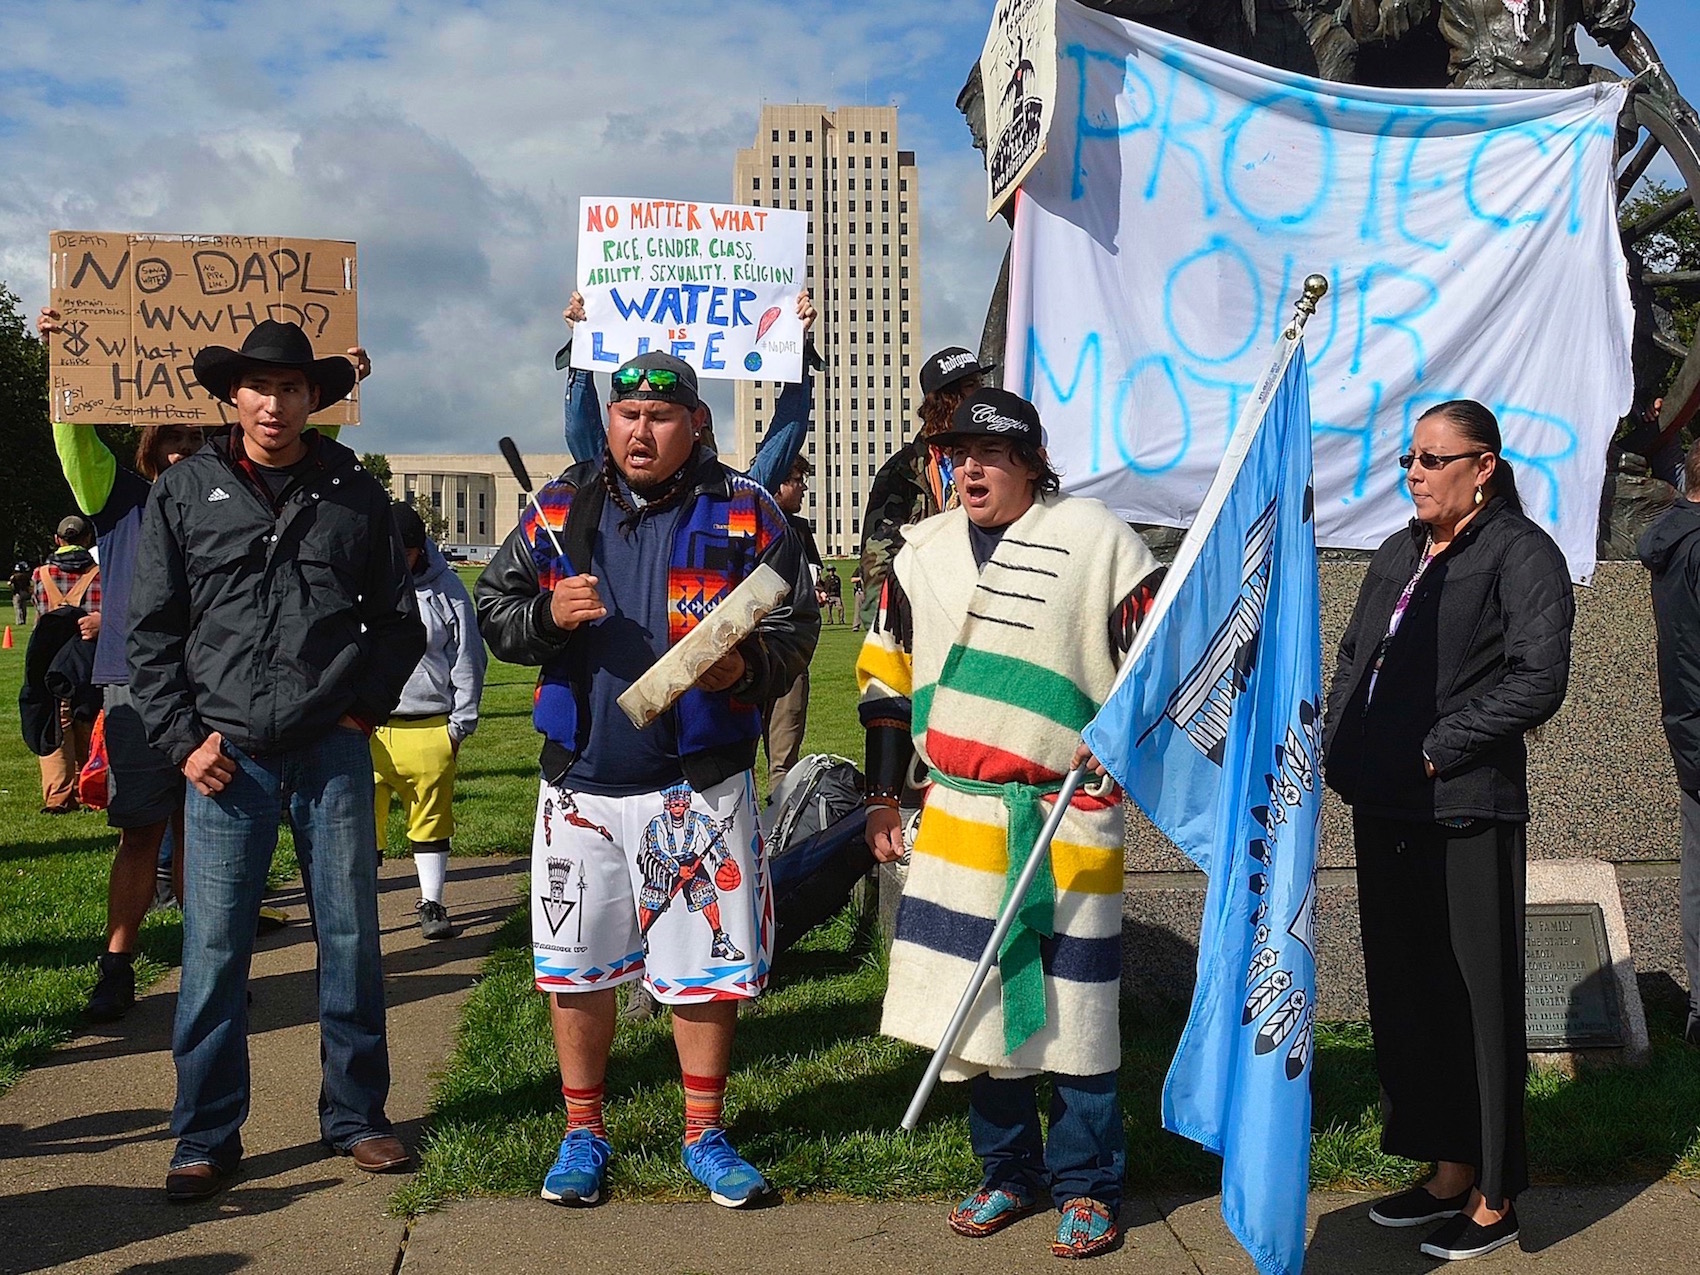 Liz Perez Halperin: Why this warrior stands up for Standing Rock